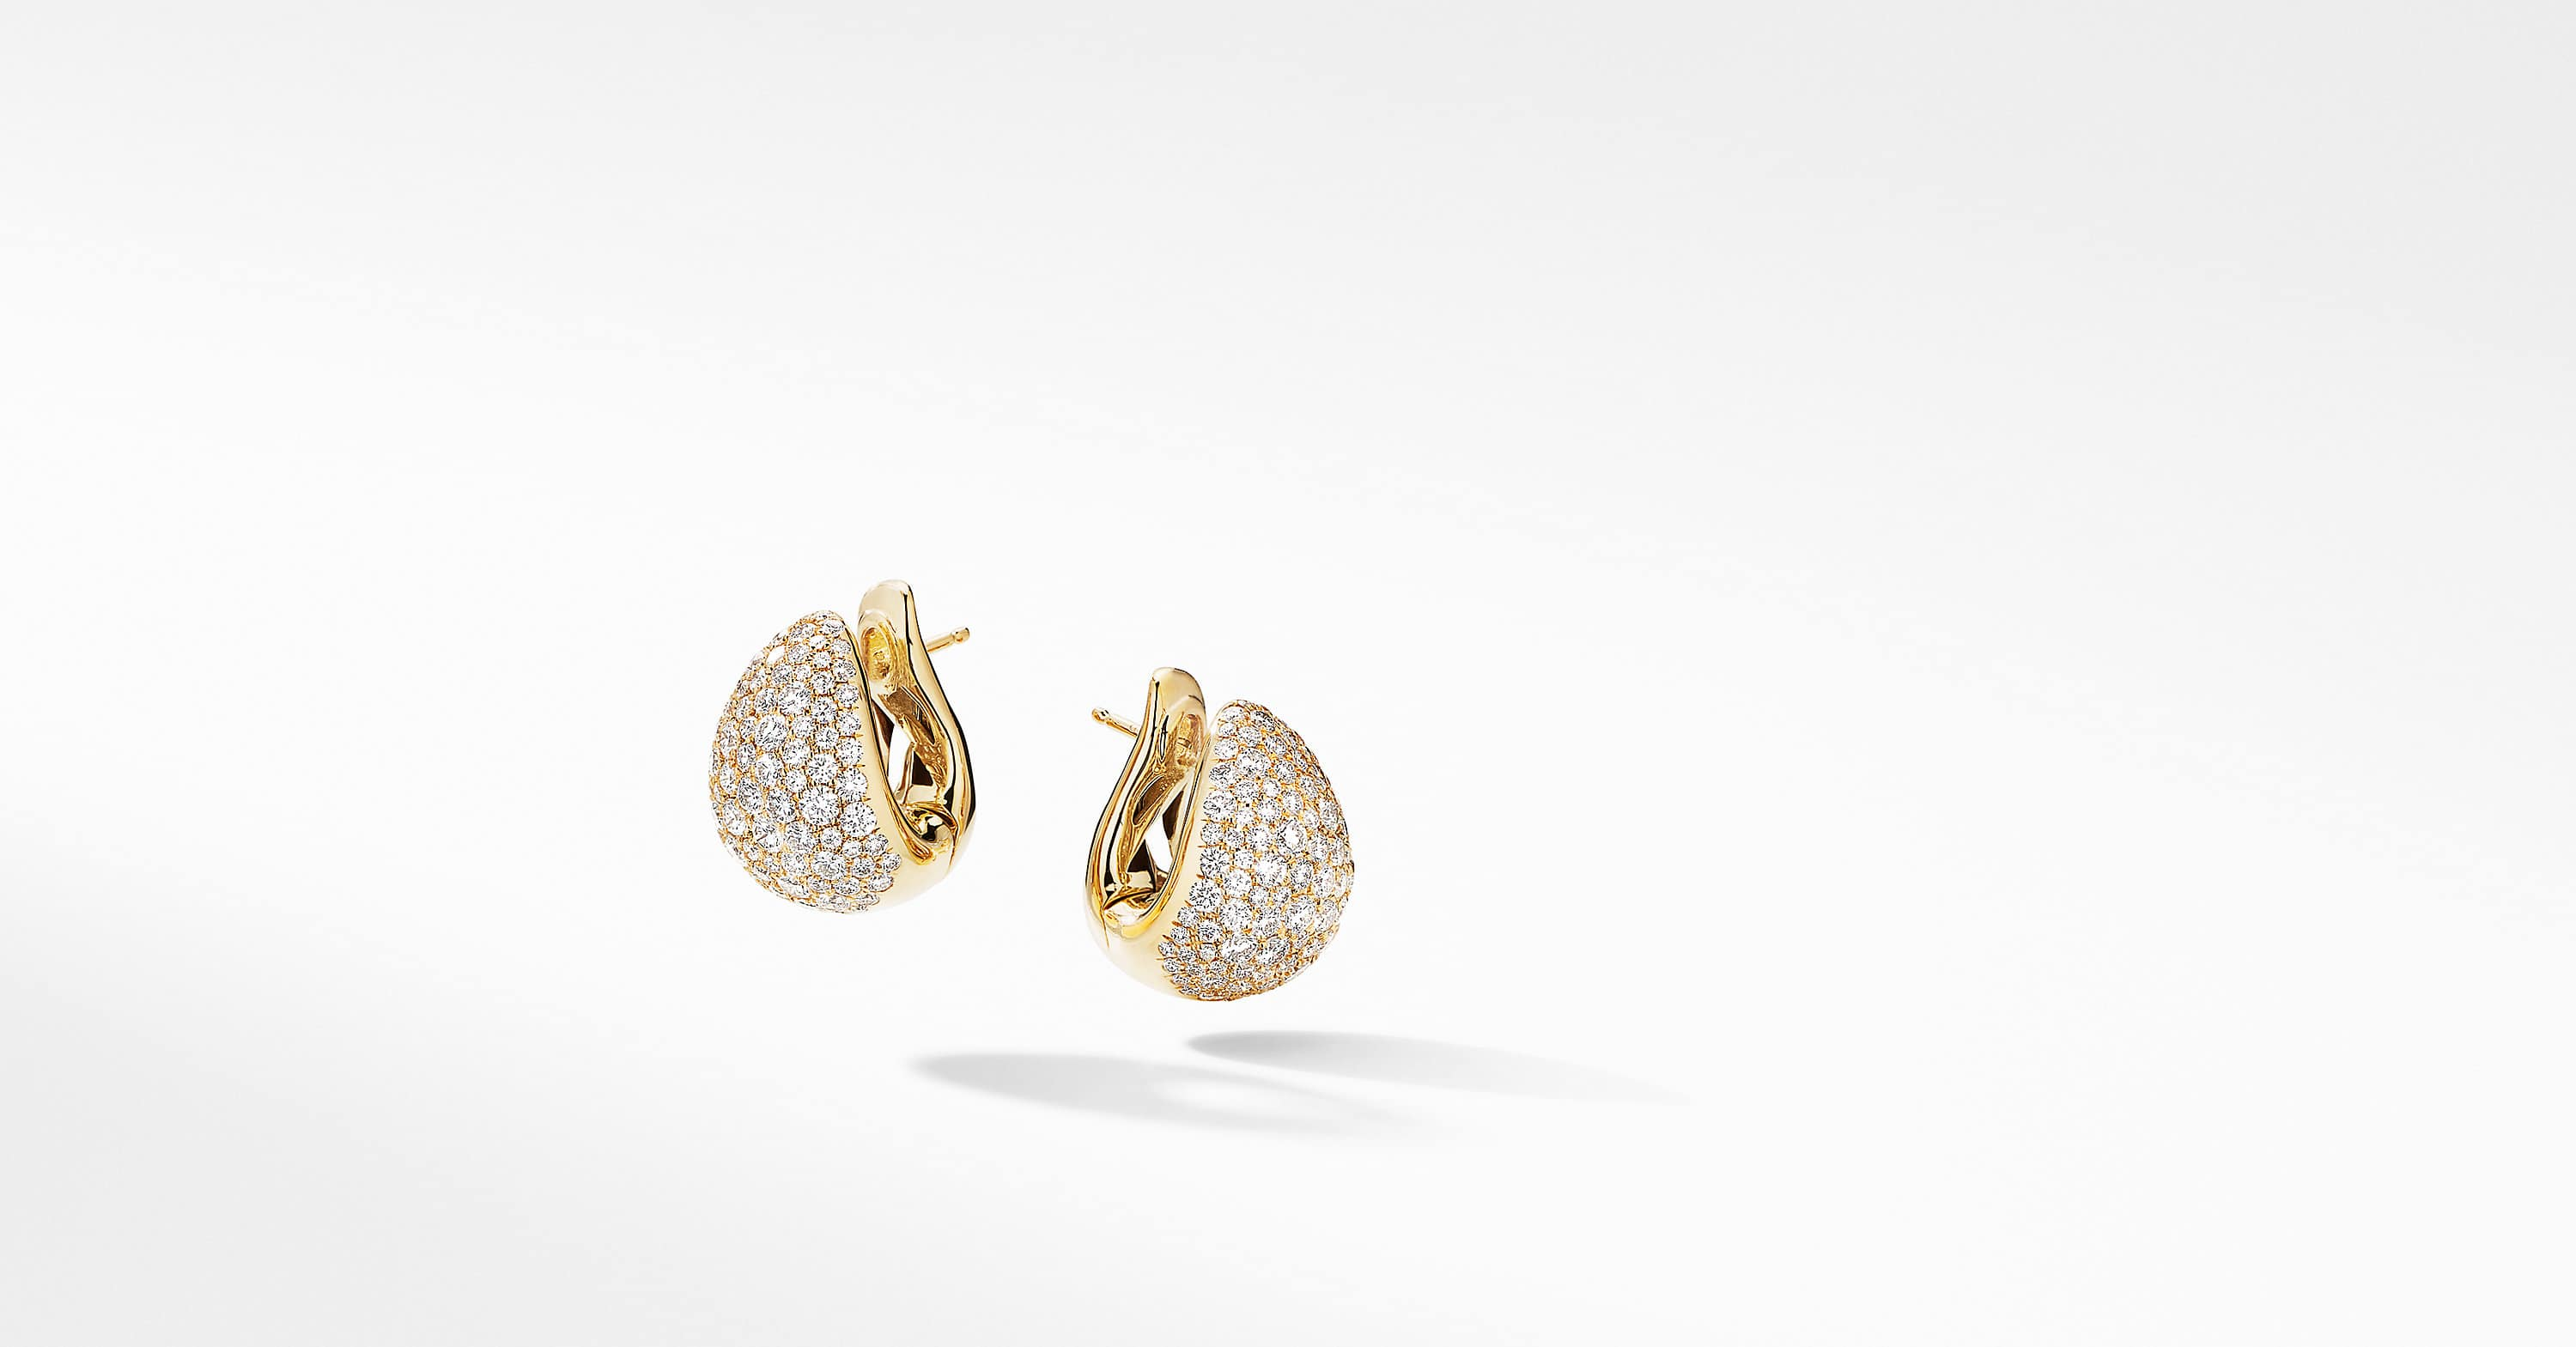 Pear Huggie Hoop Earrings in 18K Yellow Gold with Pavé